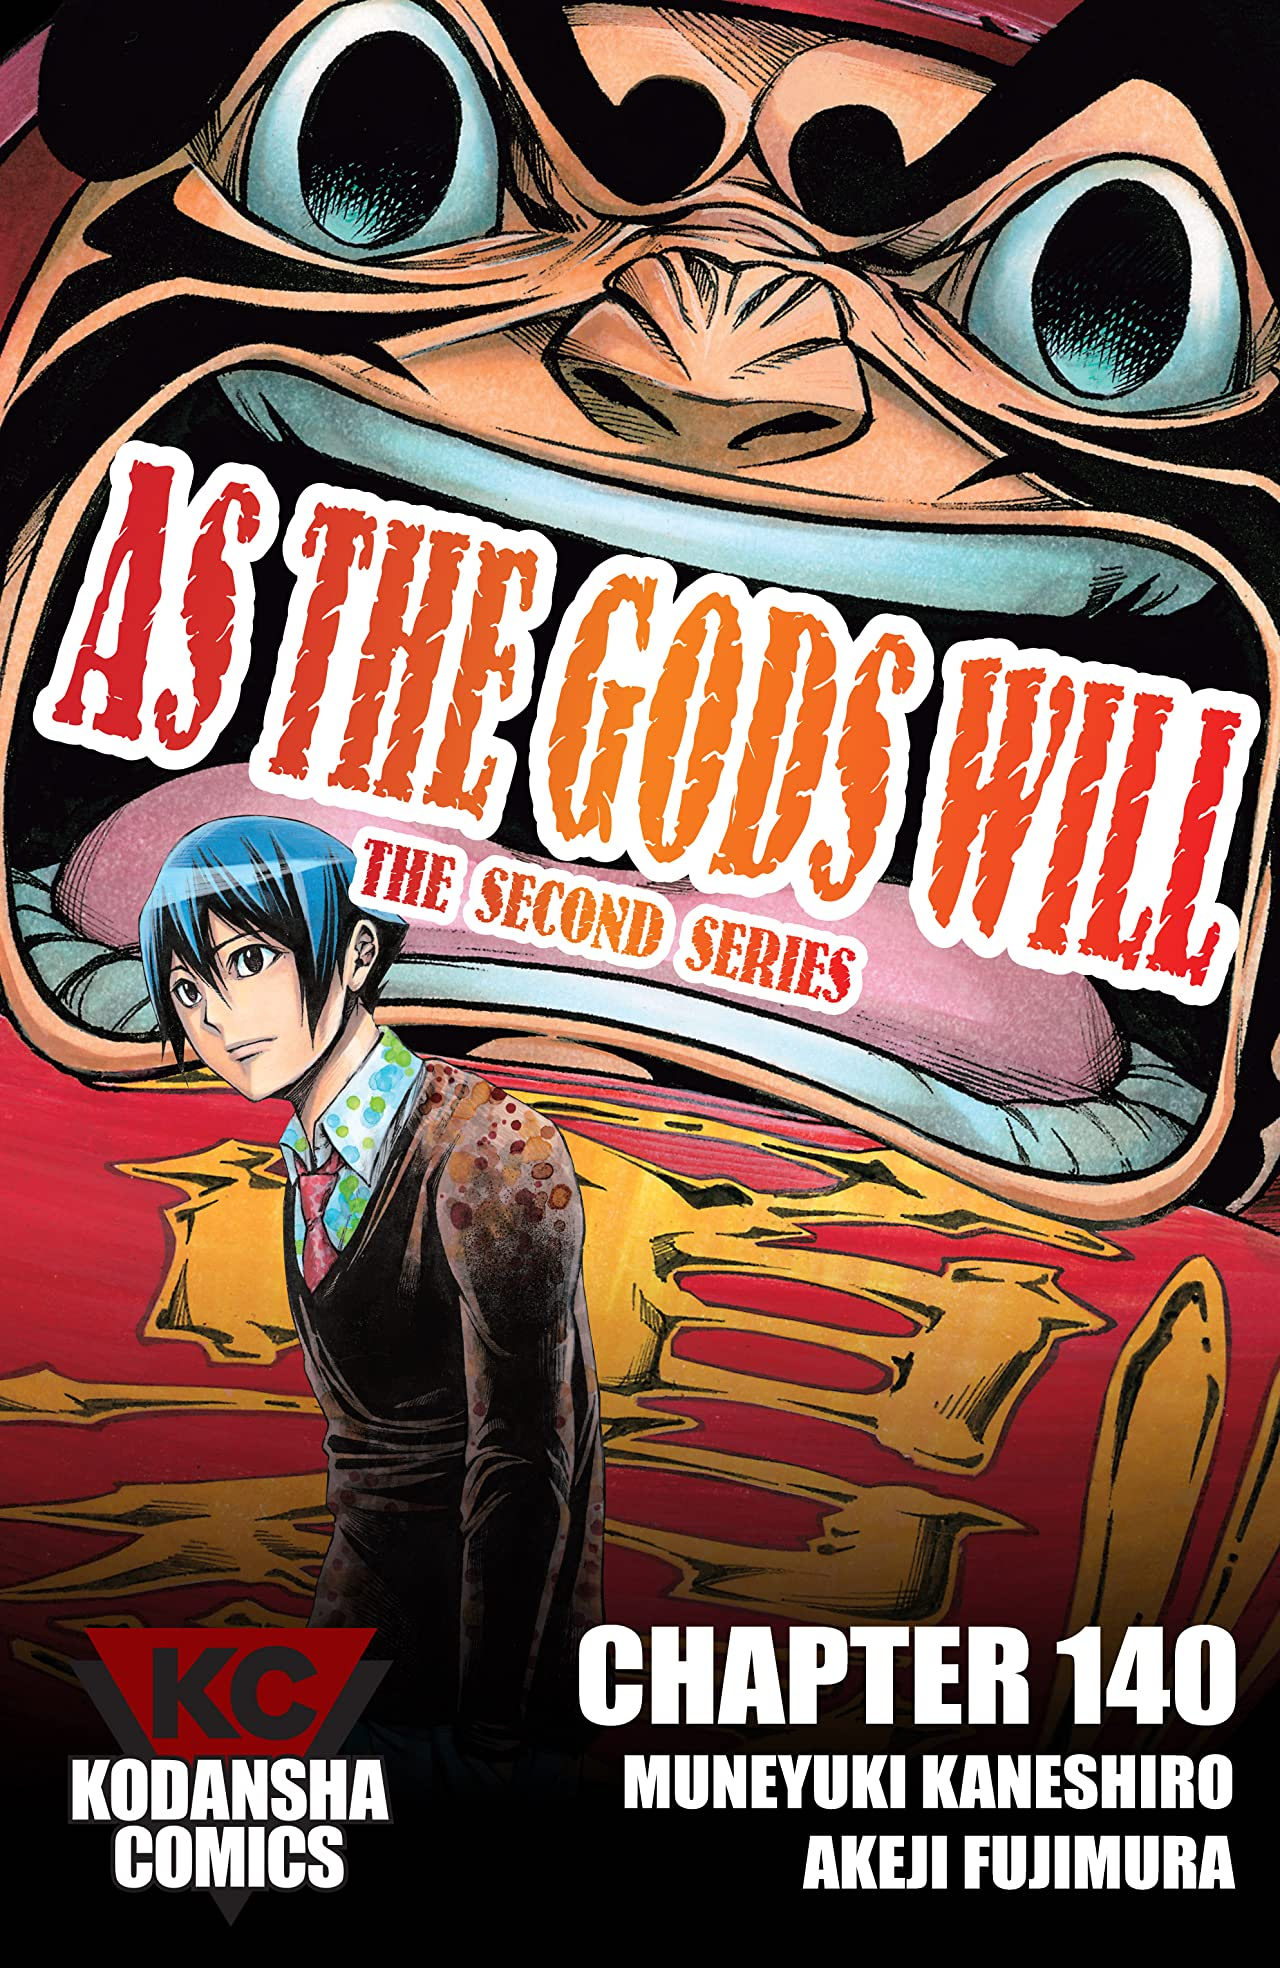 As The Gods Will: The Second Series #140